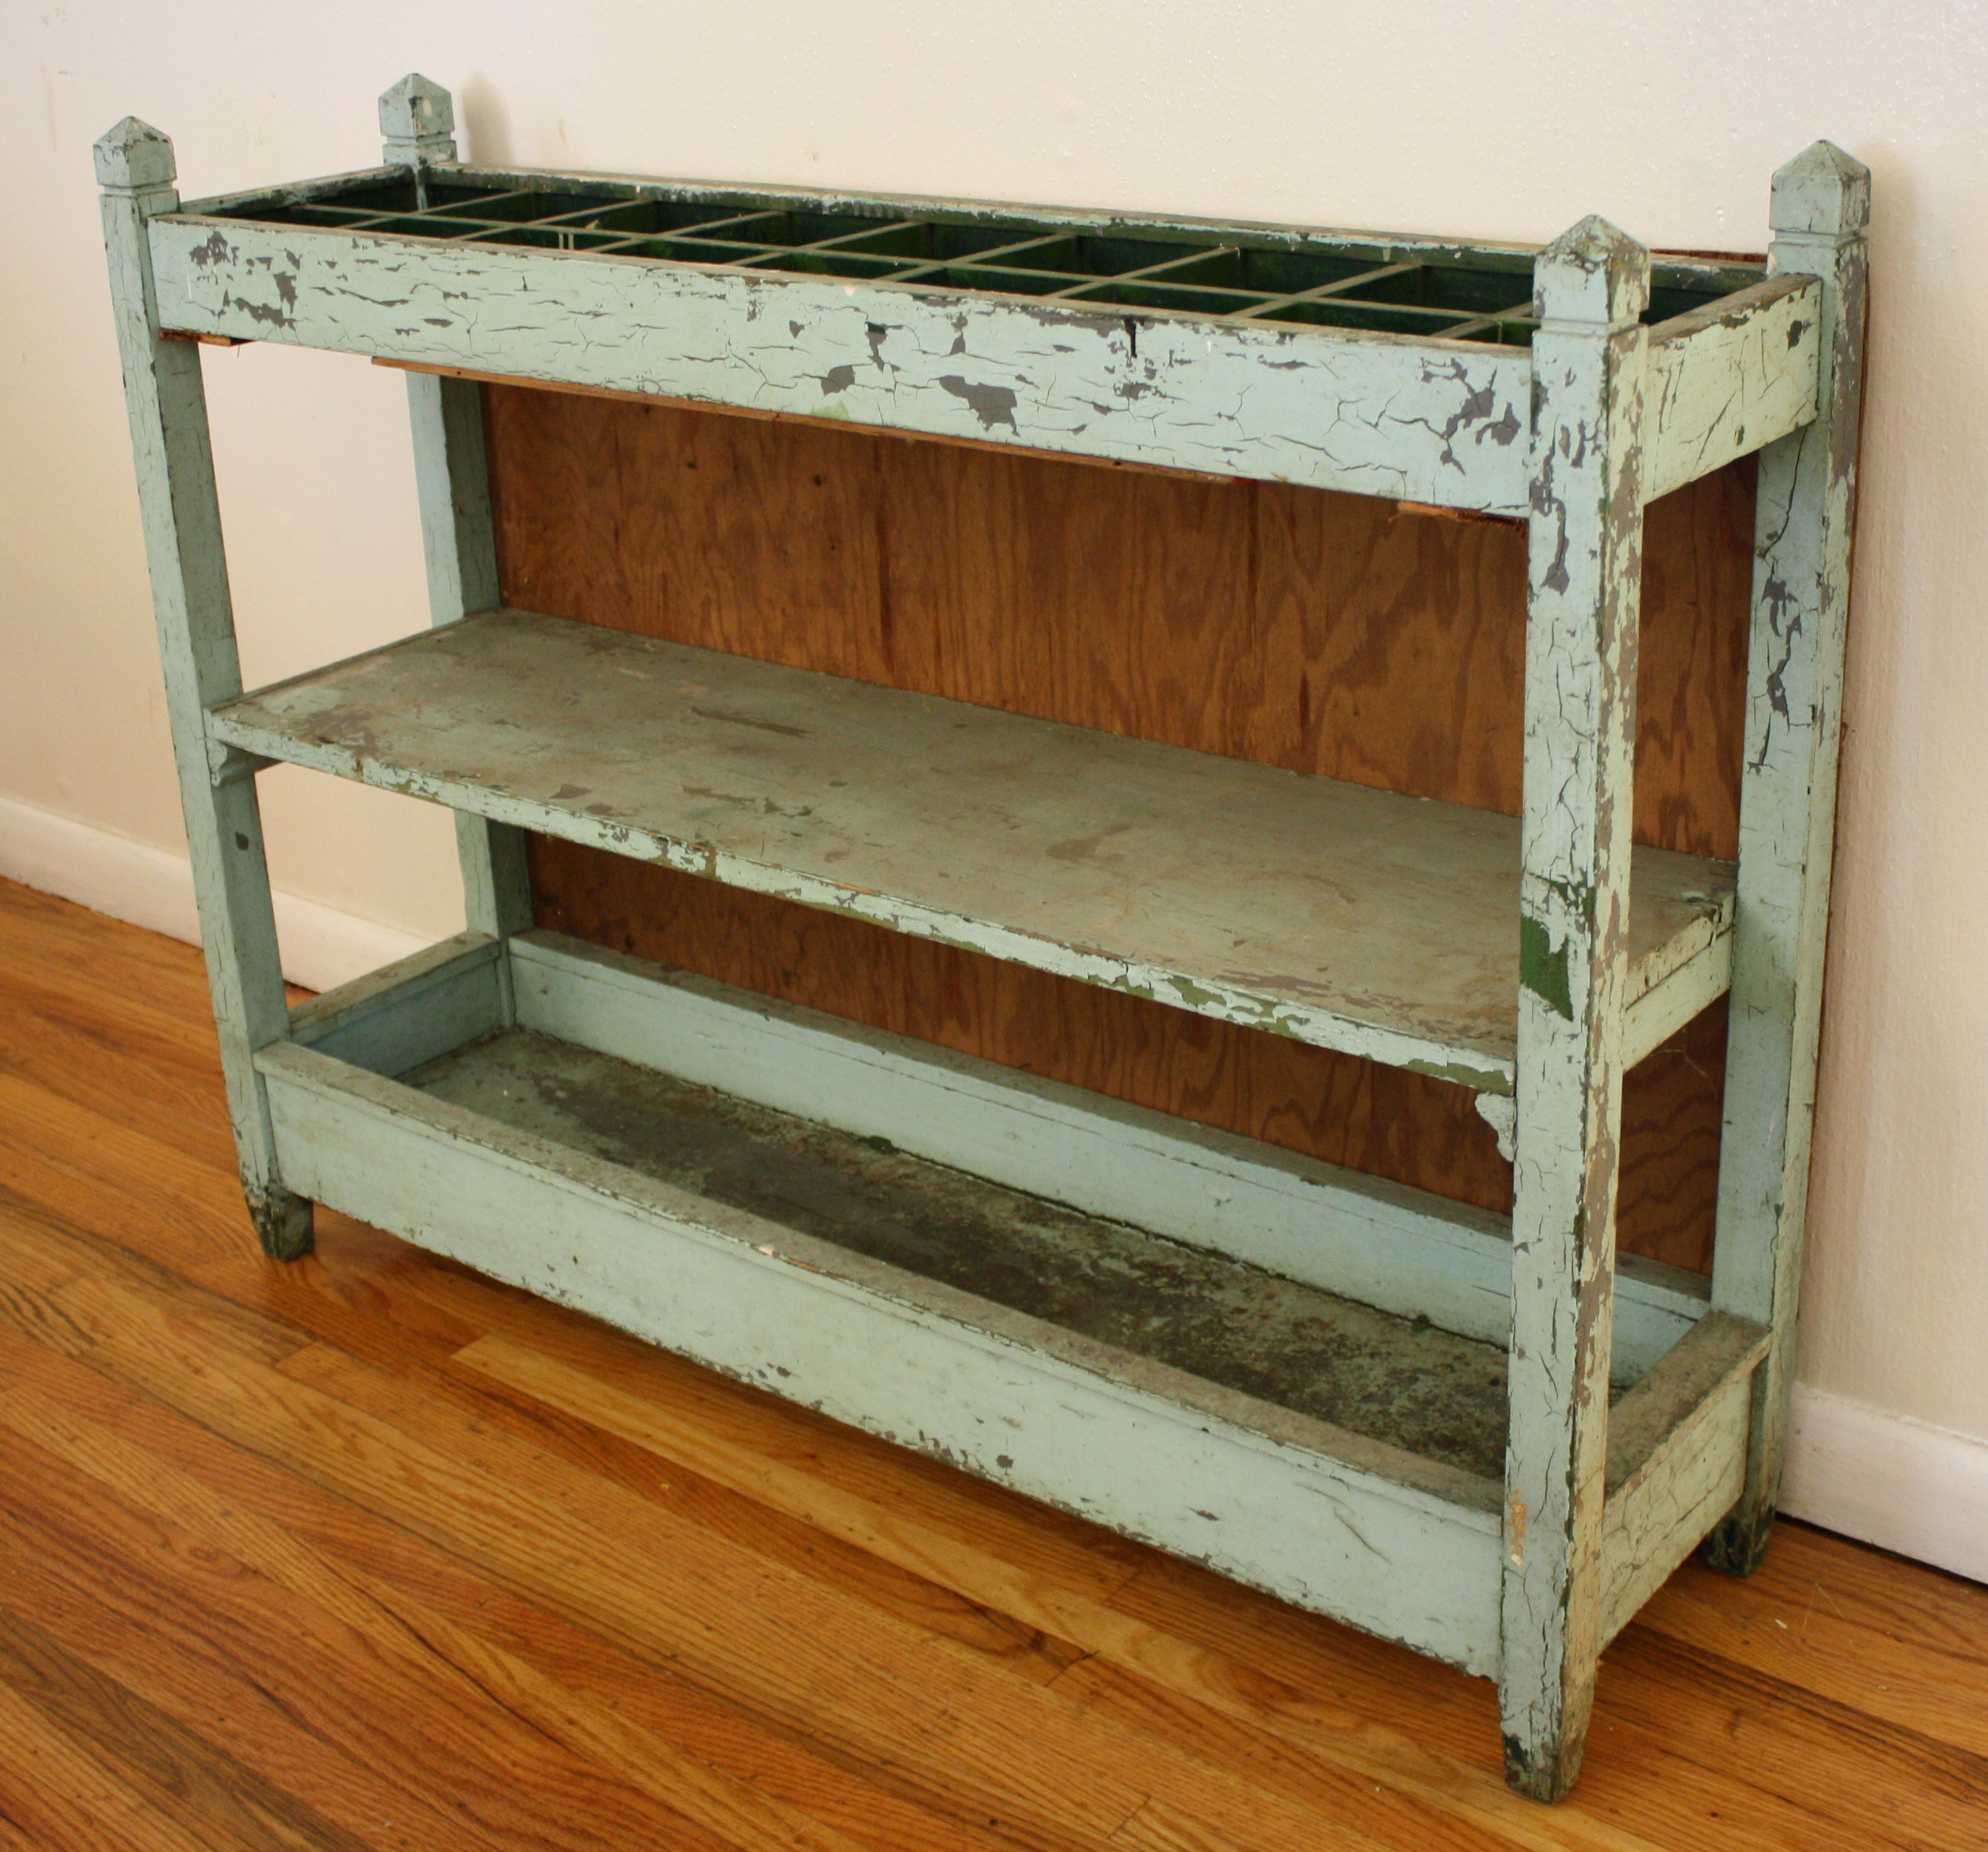 Shabby Chic Kitchen Shelves: Shabby Chic Turquoise Shelf With Square Compartments